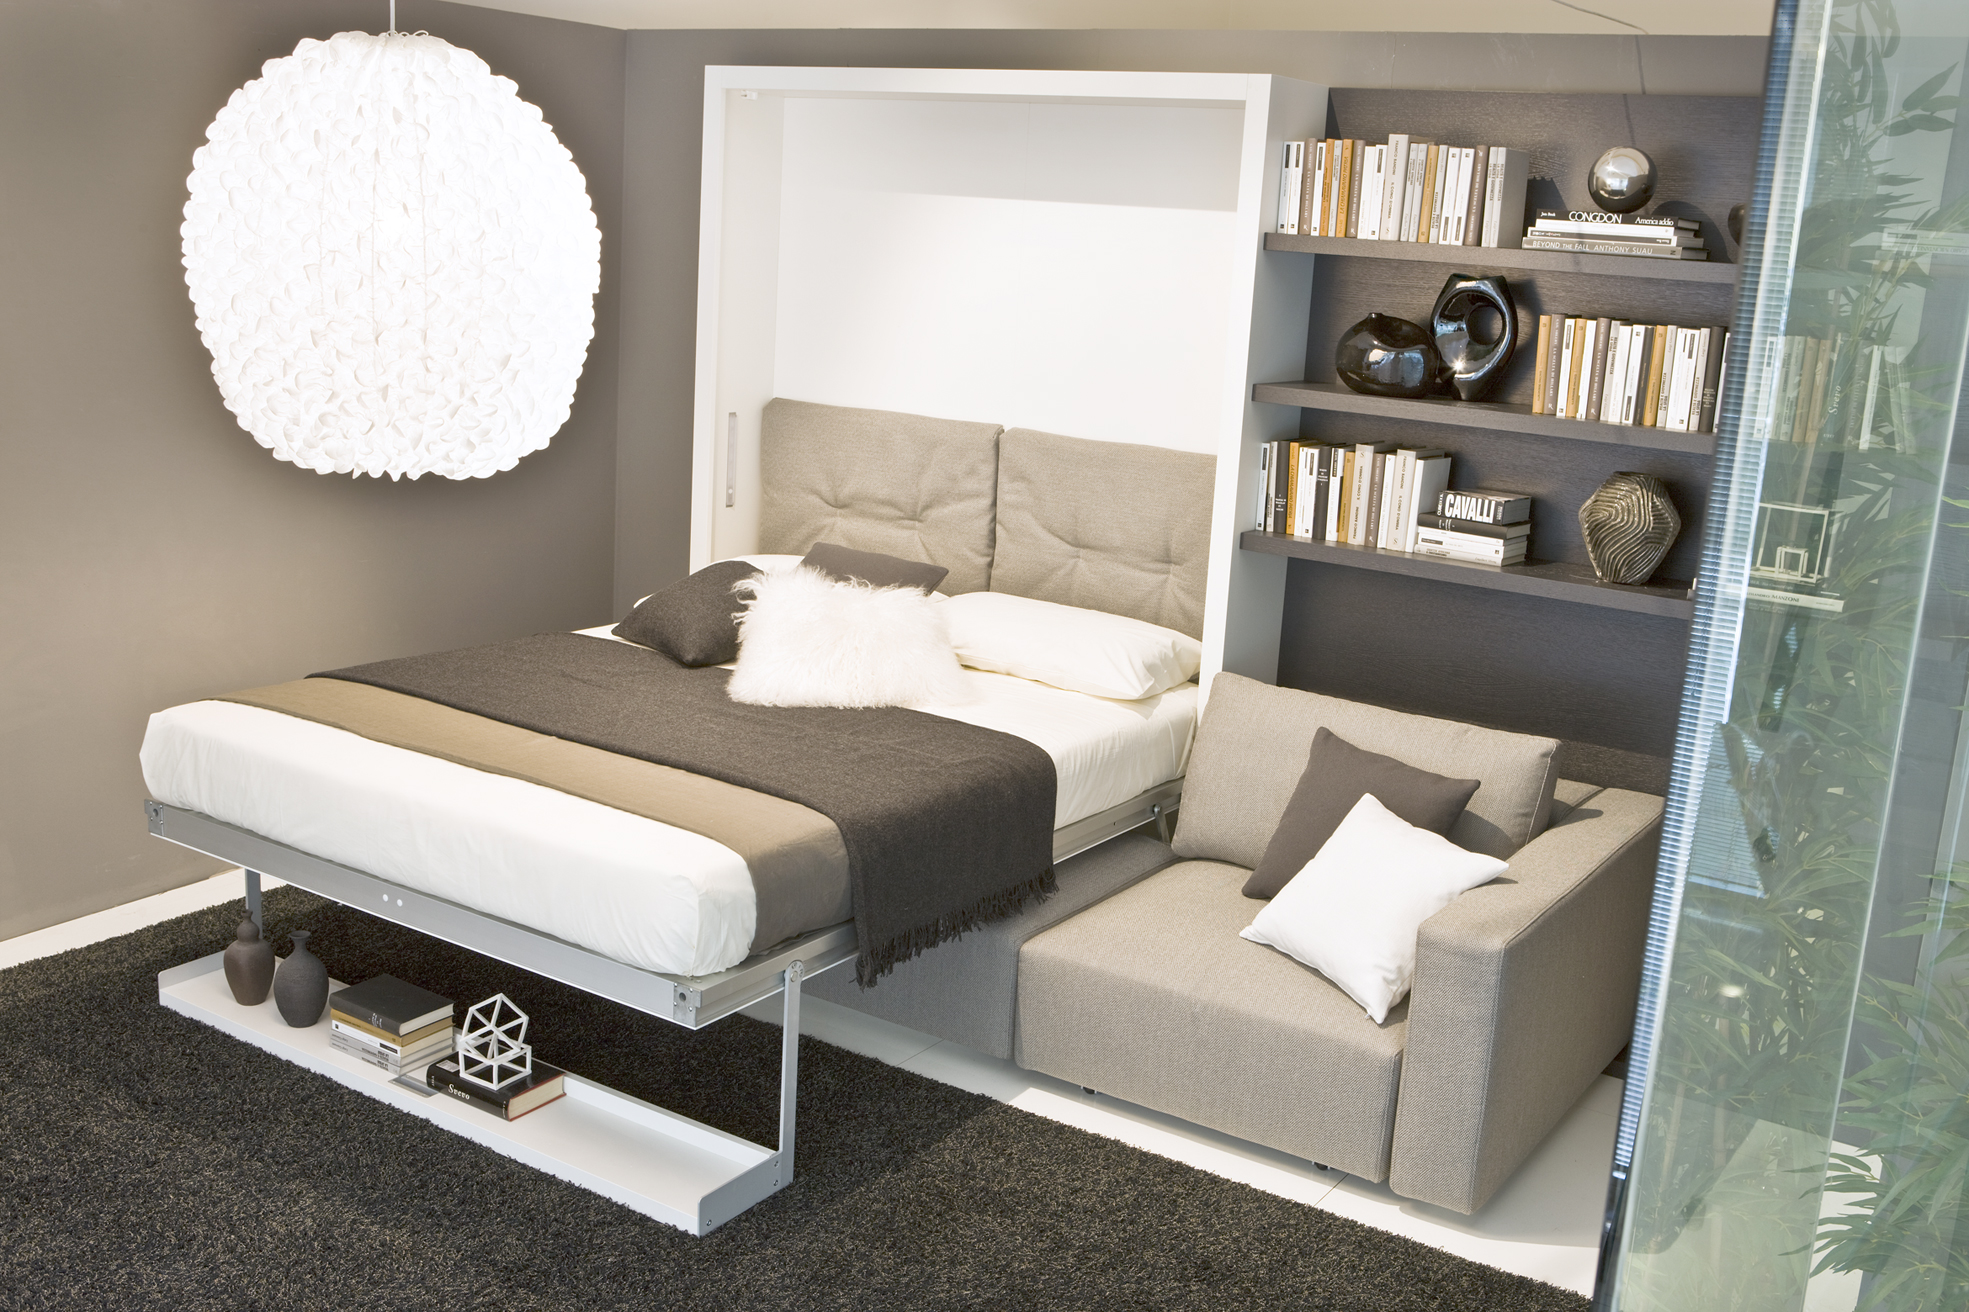 The Atoll Swing Sofa Fold Away Wall Bed Unit Many Different Sofa